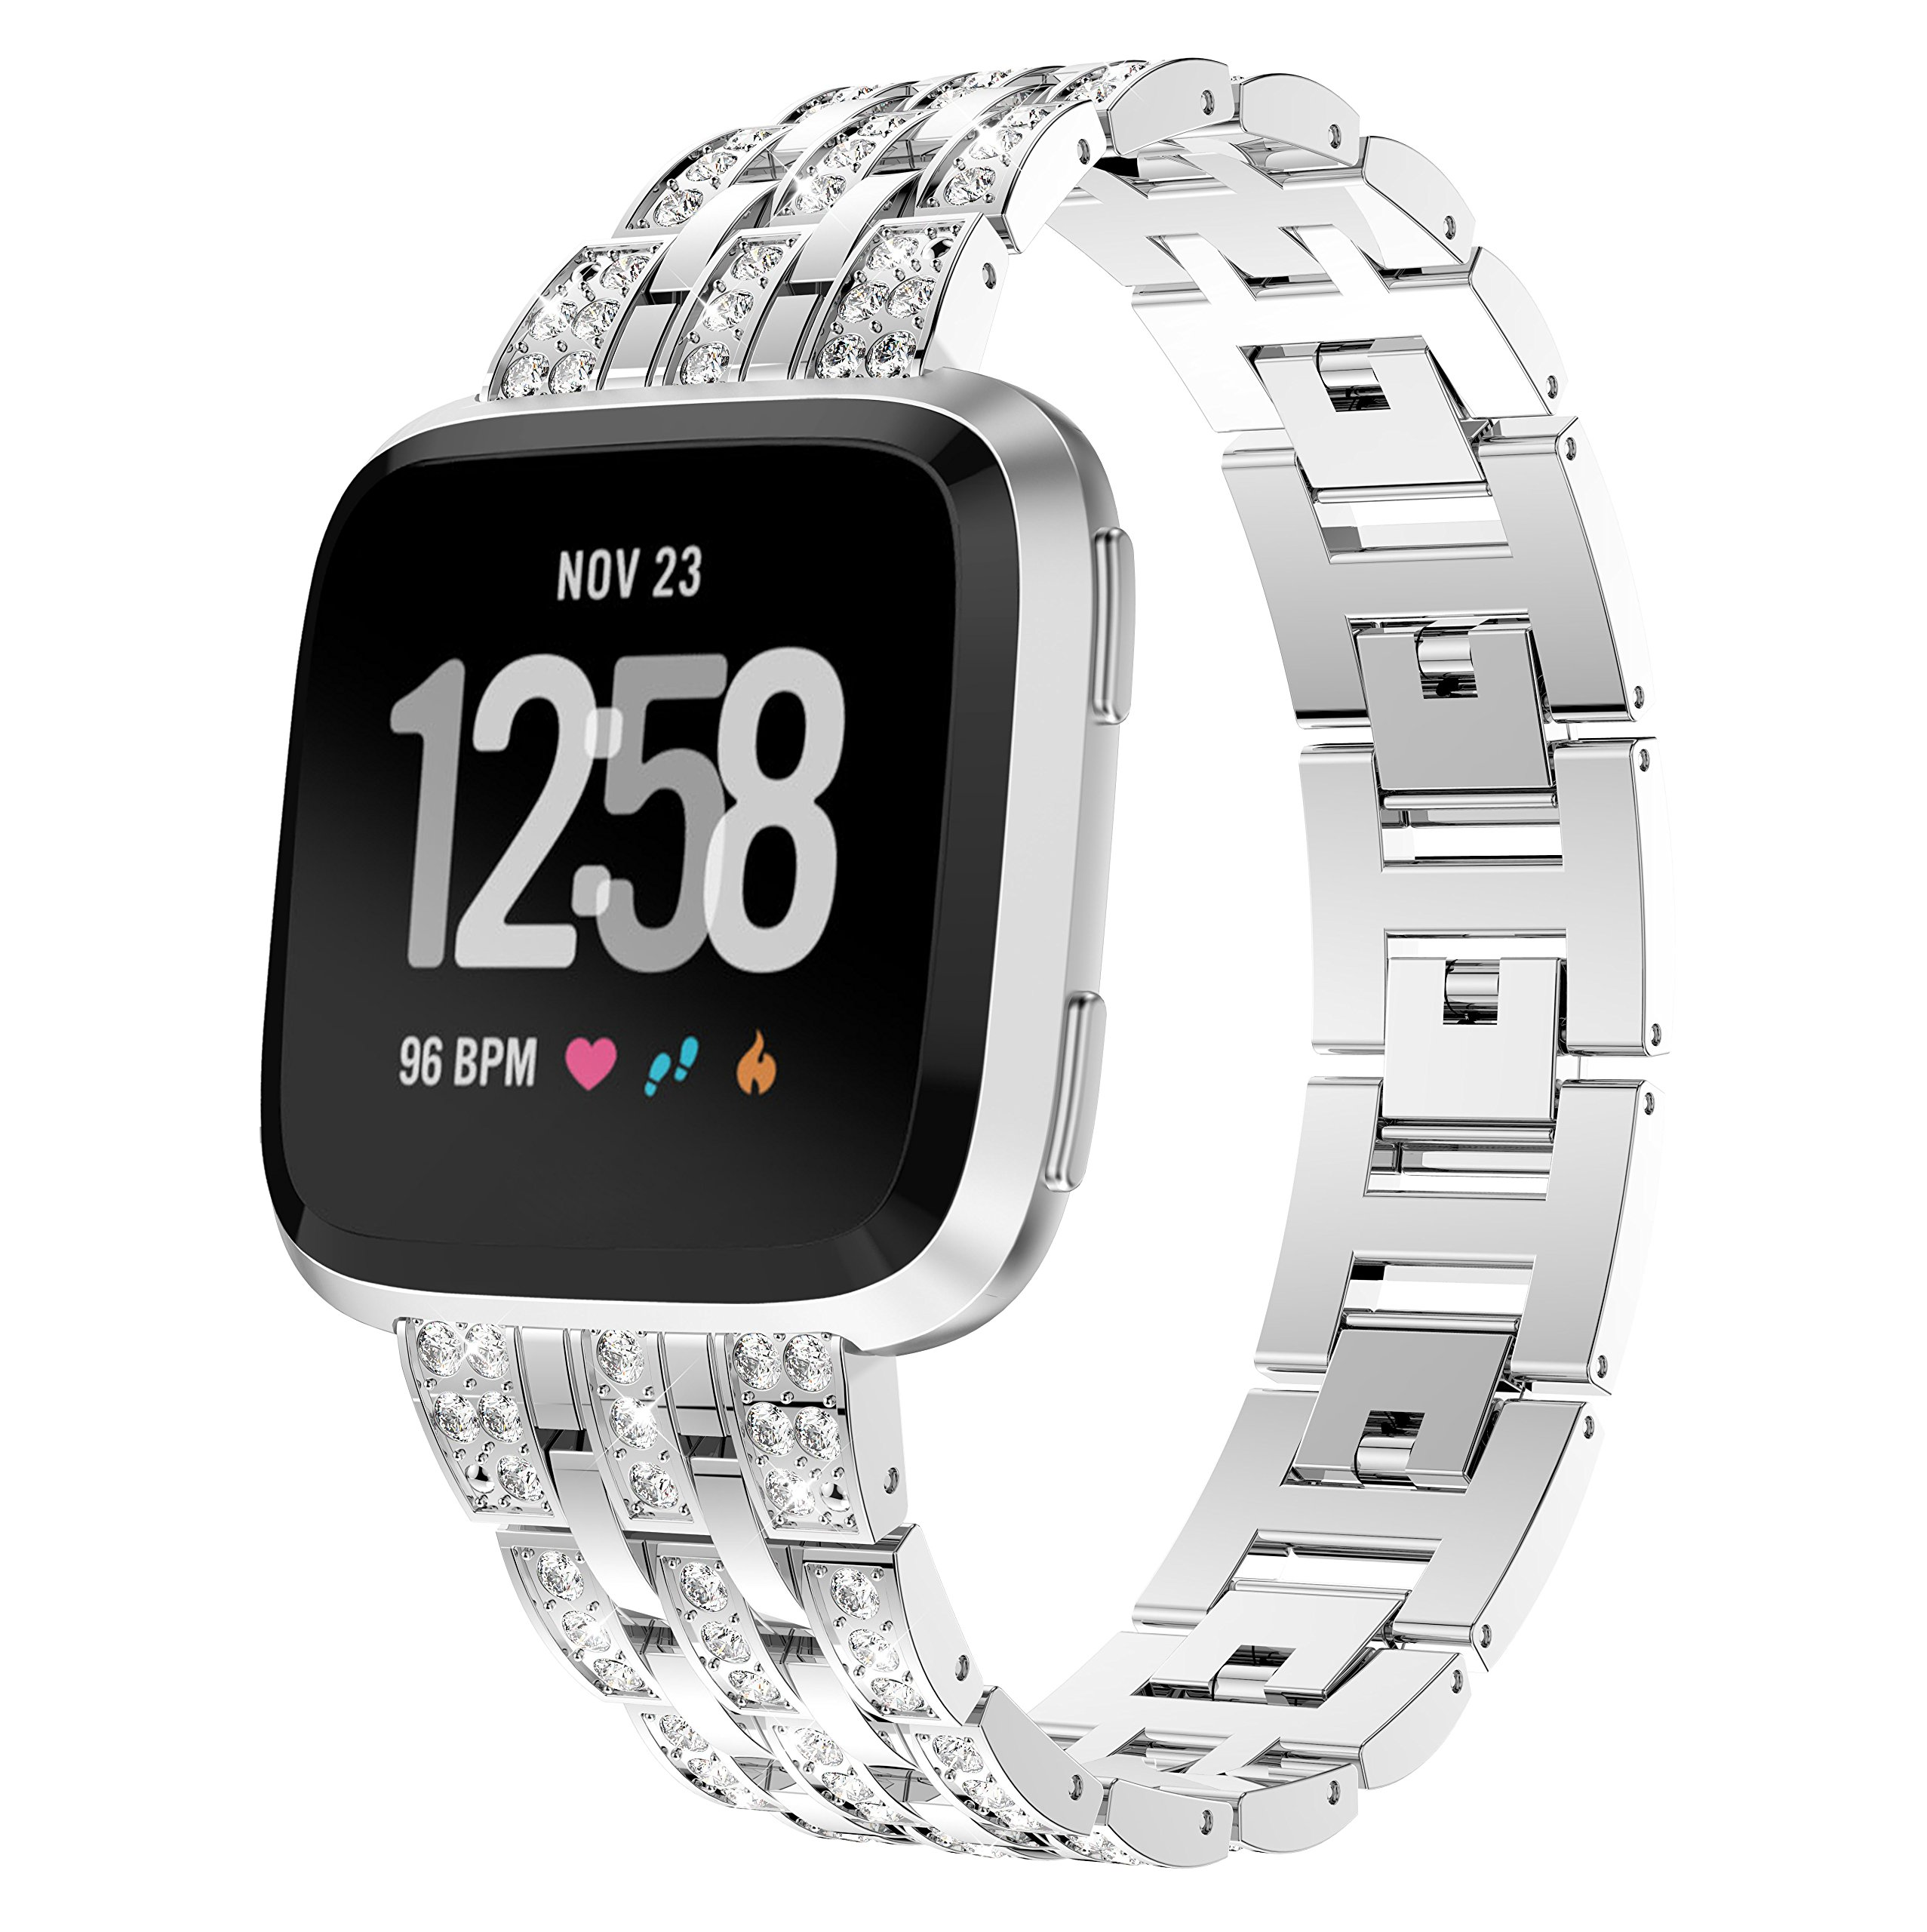 KisFace Metal Band for Fitbit Versa,Rhinestone Series Accessories Quick Release Unit Design for Fitbit Versa Band (Silver).